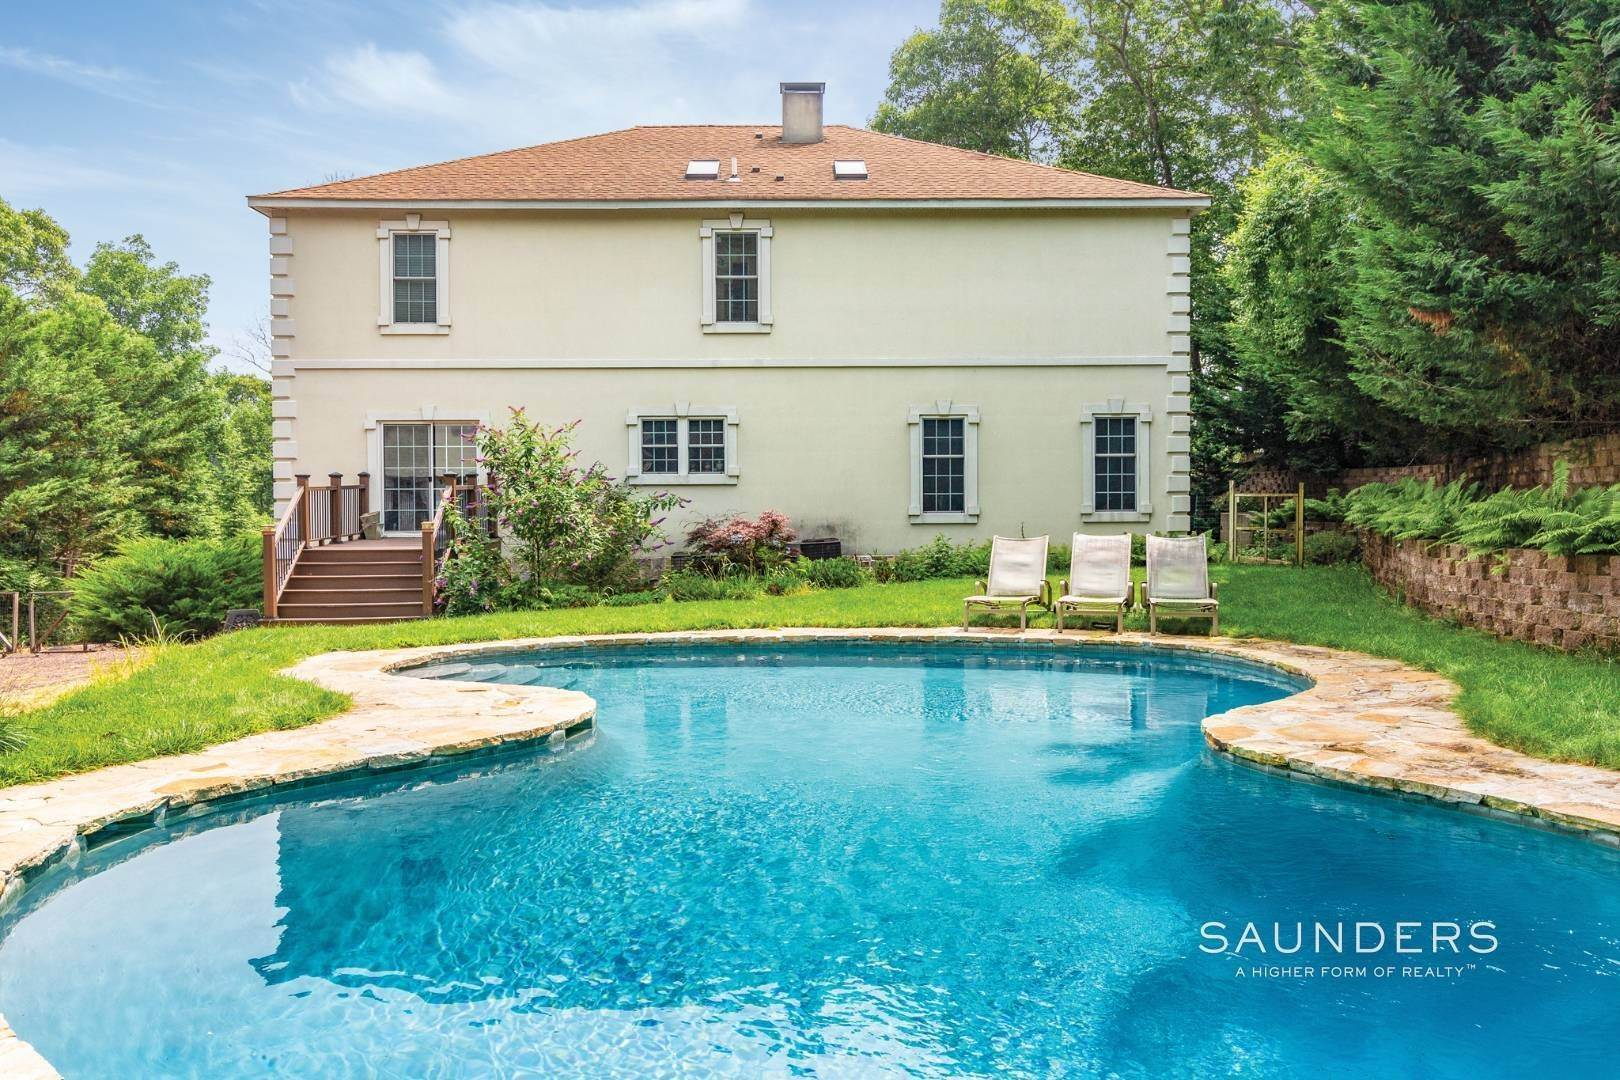 6. Single Family Homes for Sale at Pristine Traditional In Desirable Hampton Waters Community 81 Oyster Shores Road, East Hampton, East Hampton Town, NY 11937